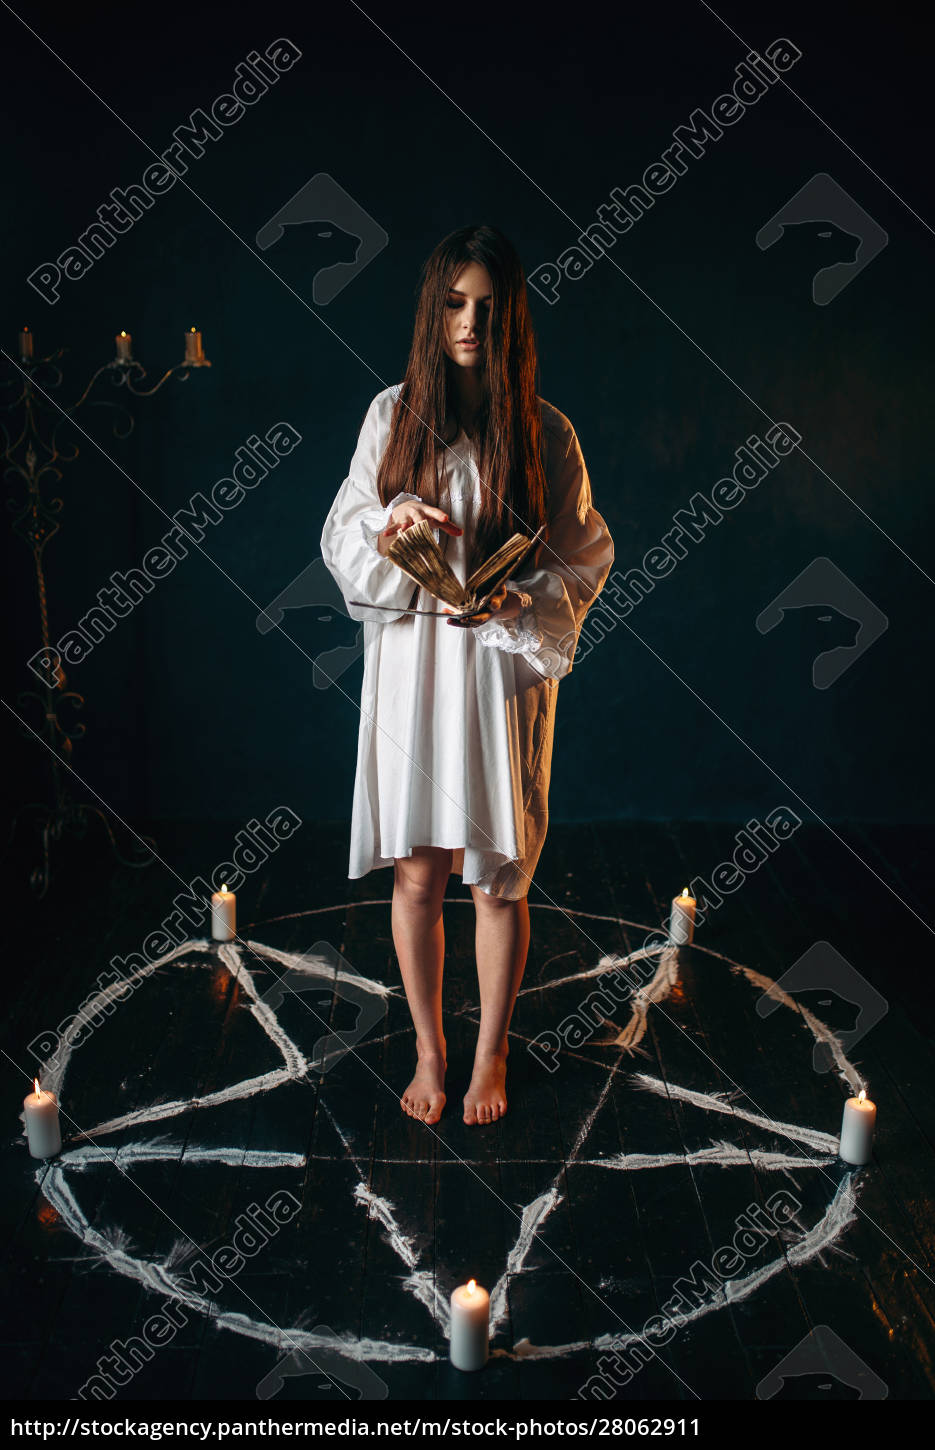 woman, standing, in, pentagram, circle, and - 28062911